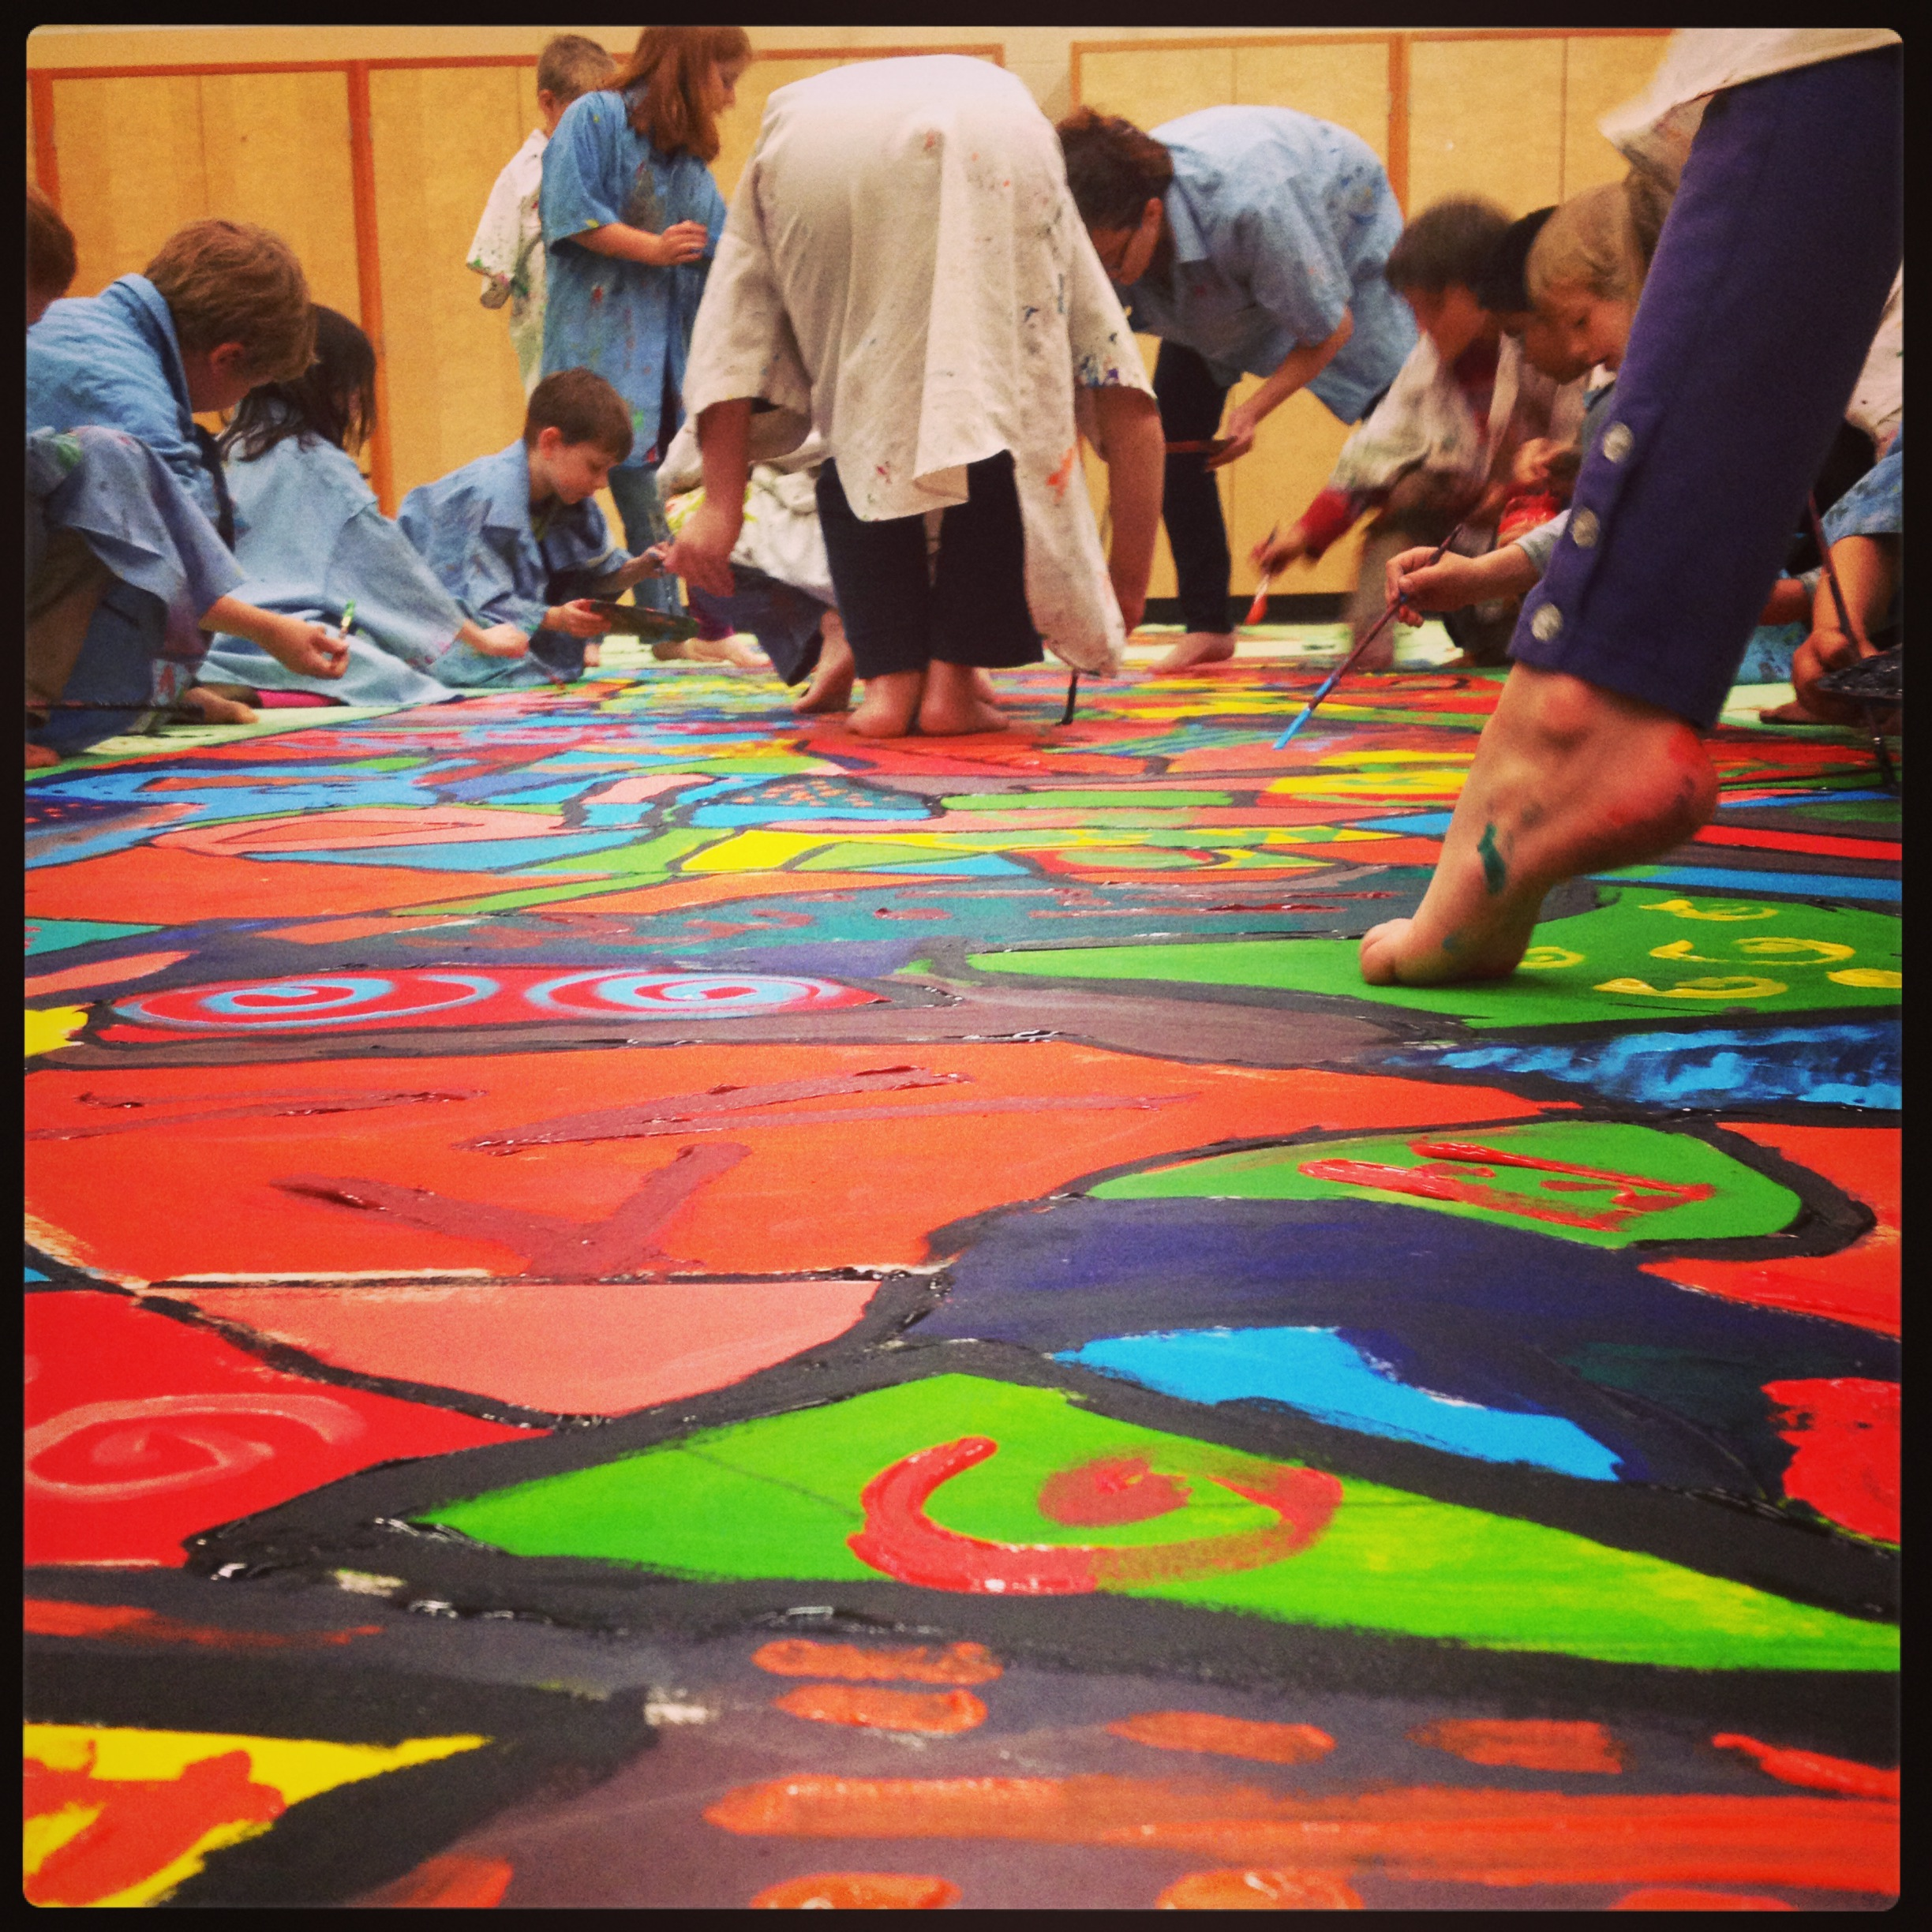 This huge canvas was painted using the children themselves as templates for abstraction. We learned about colour and pattern, collaboration and community. After hanging in the hallway for a short time, the mural was divided and mounted onto boards so that each child could take home a piece of the creation.